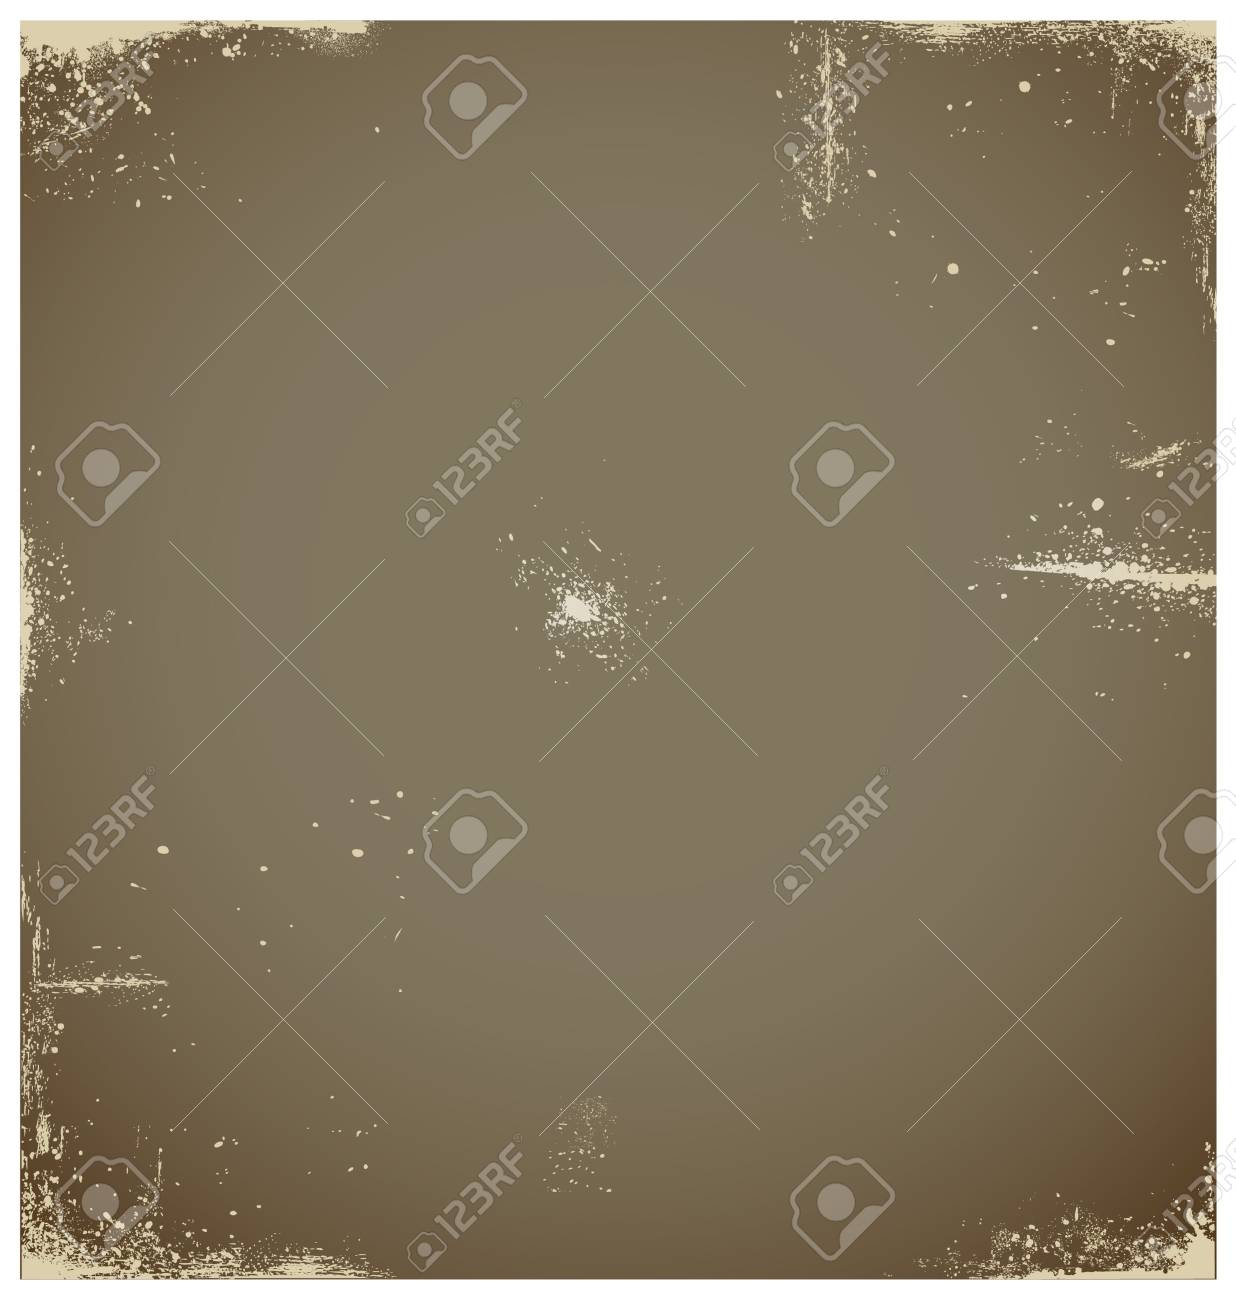 grunge background with space for text Stock Vector - 18085356